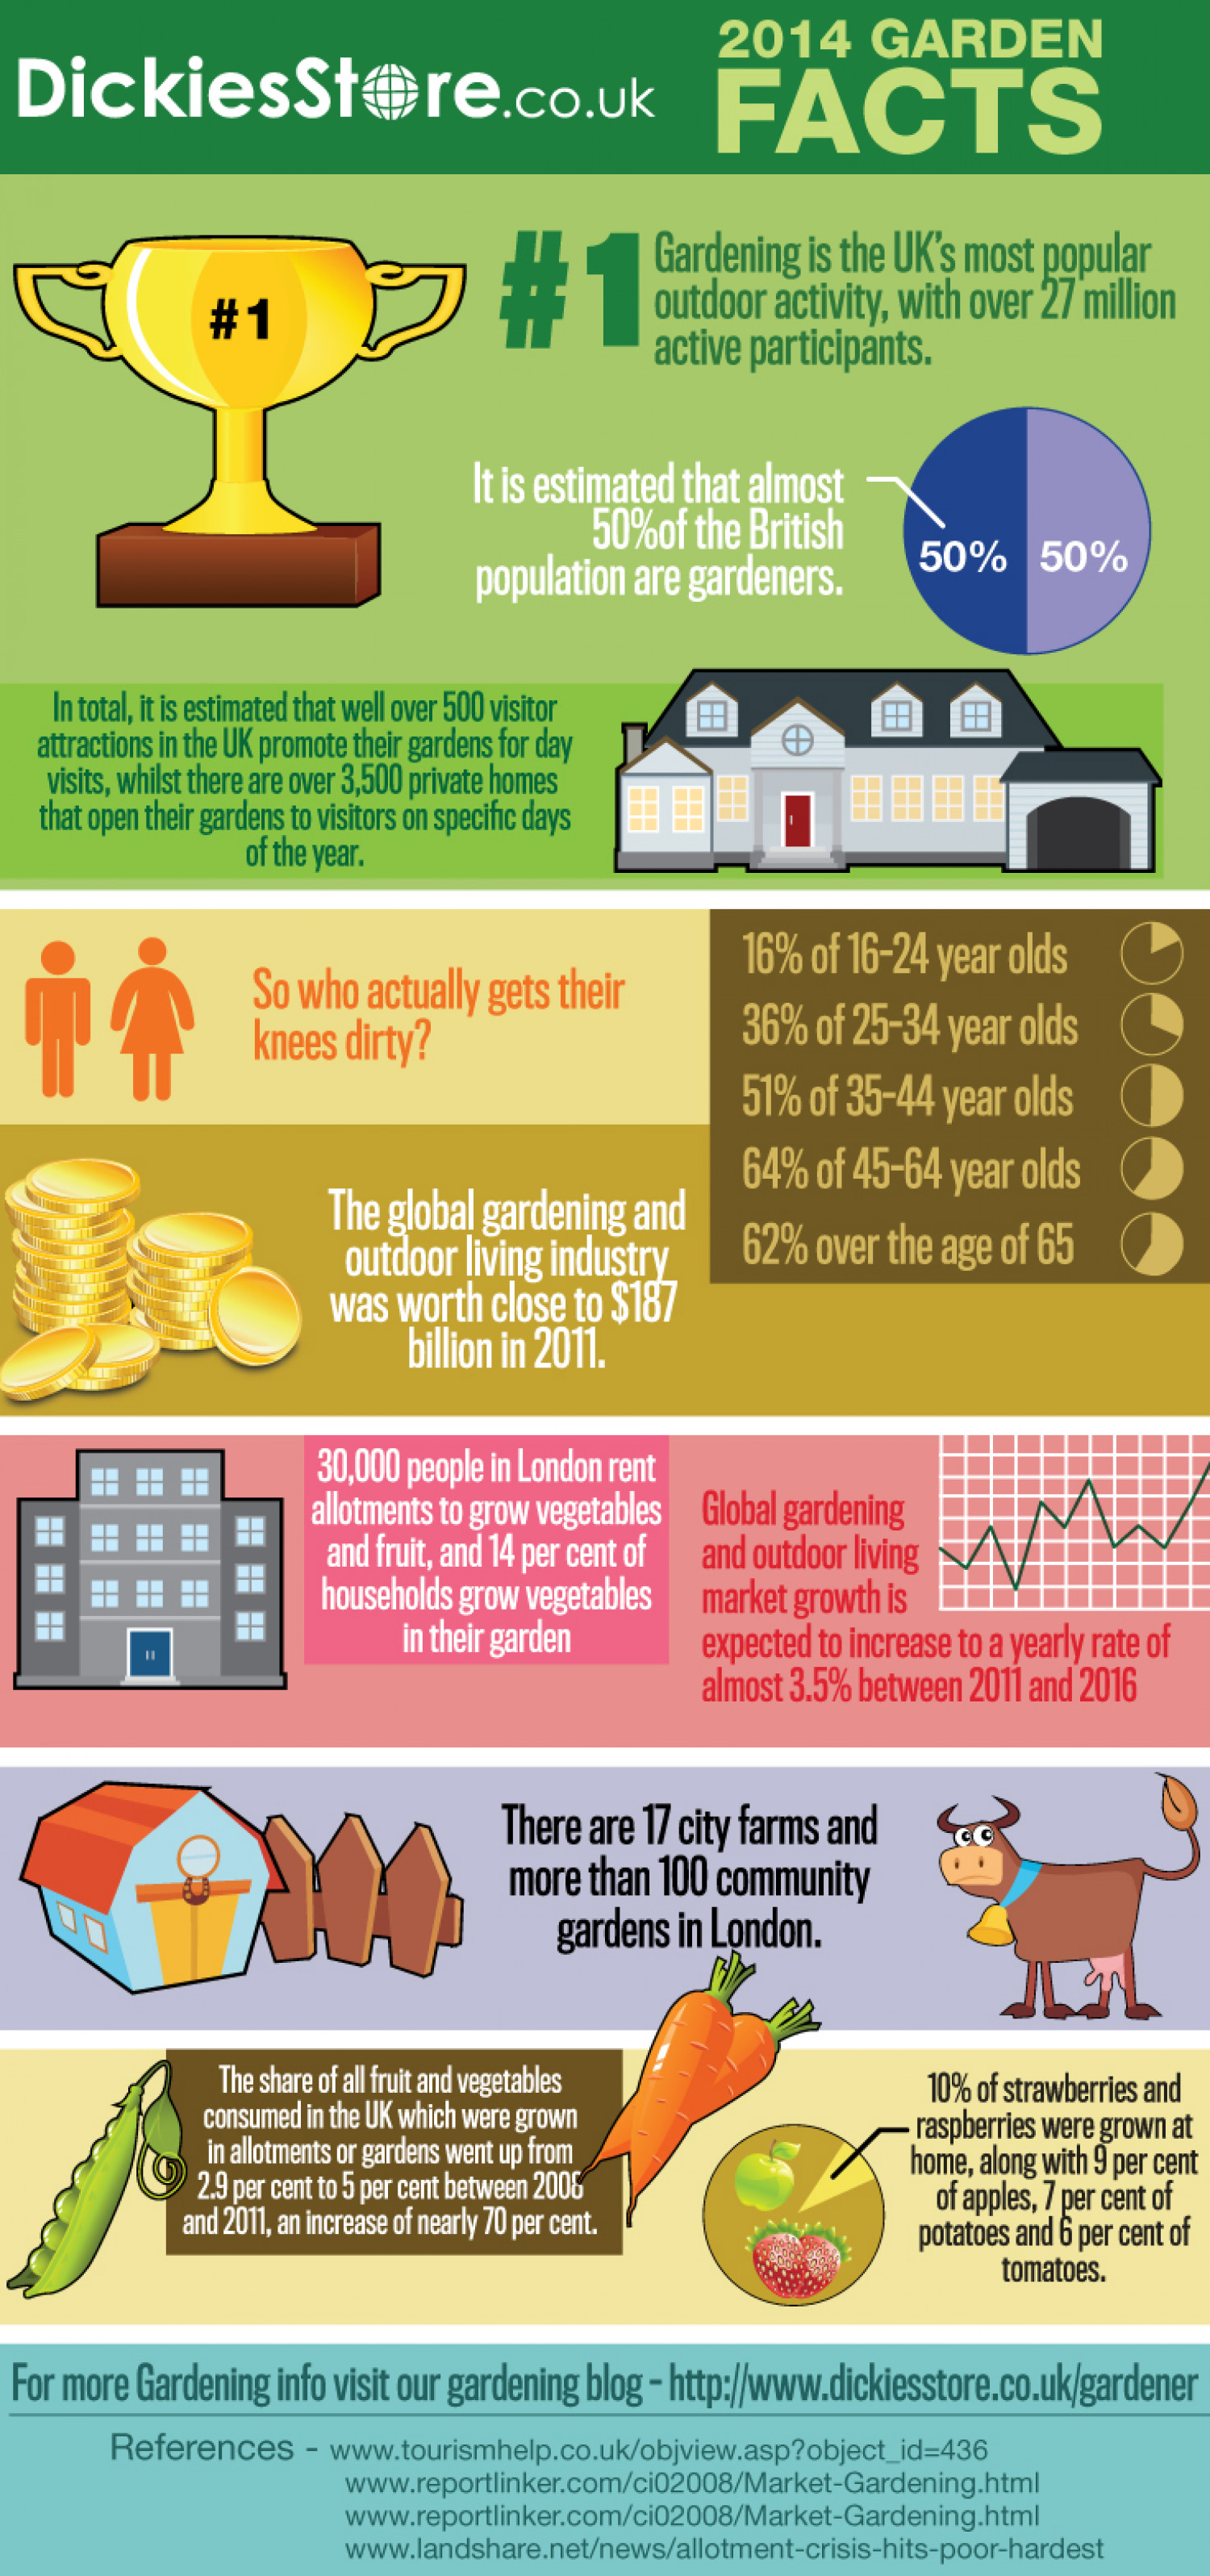 2014 Garden Facts Infographic